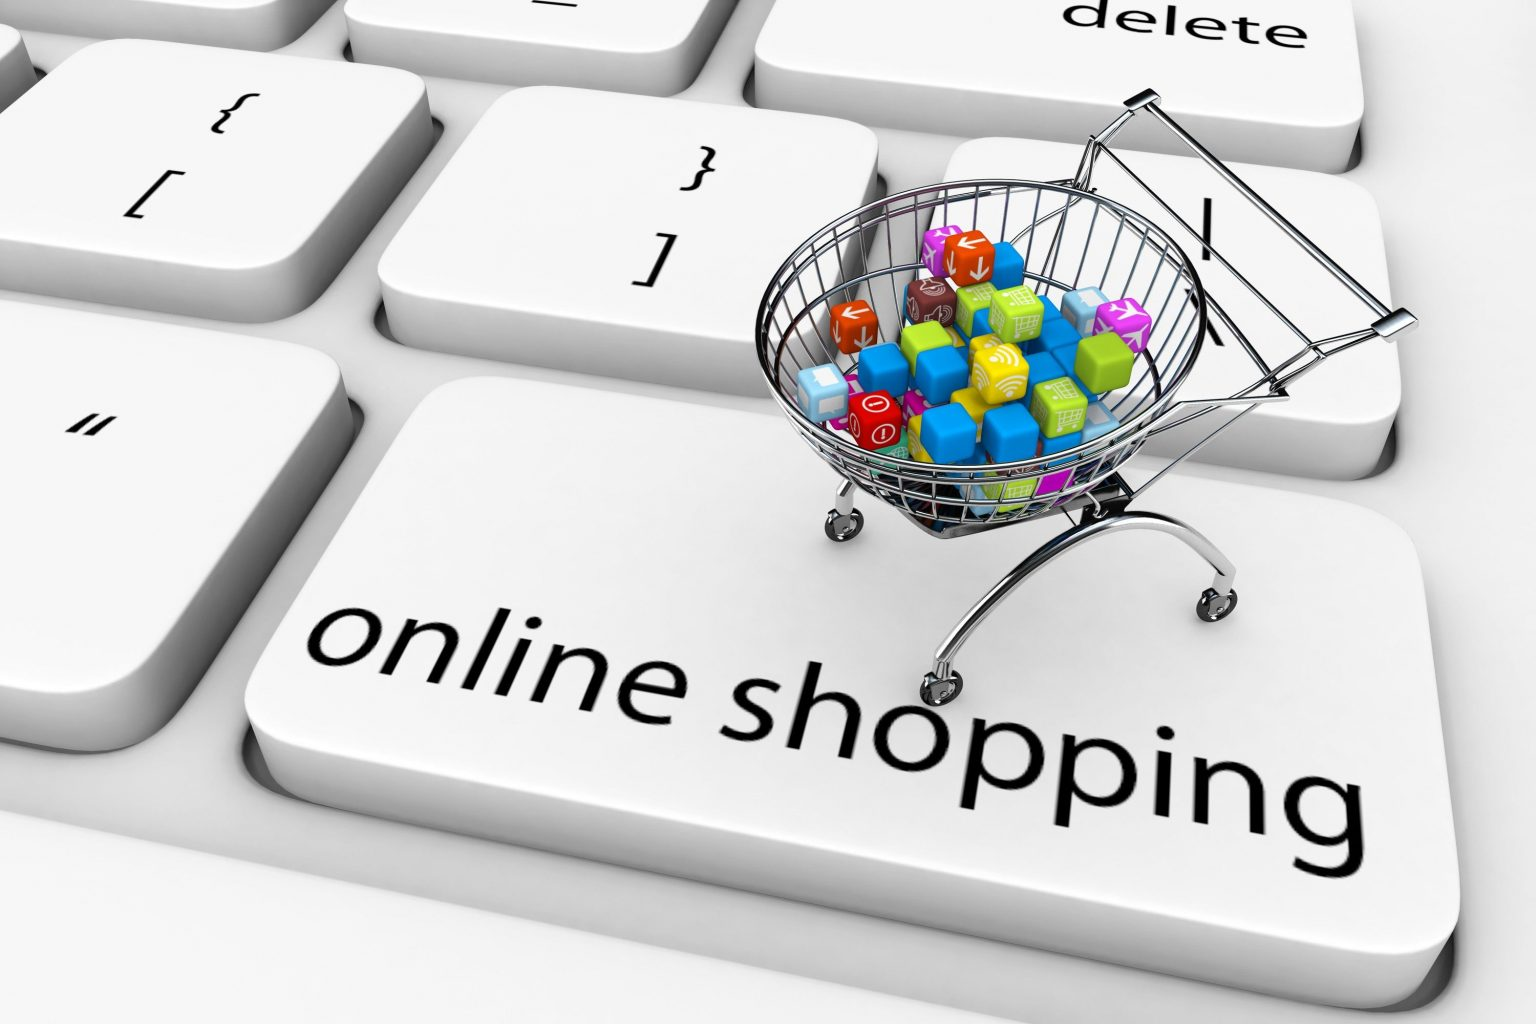 Best online shopping sites in kenya urban kenyans for What are some online shopping sites